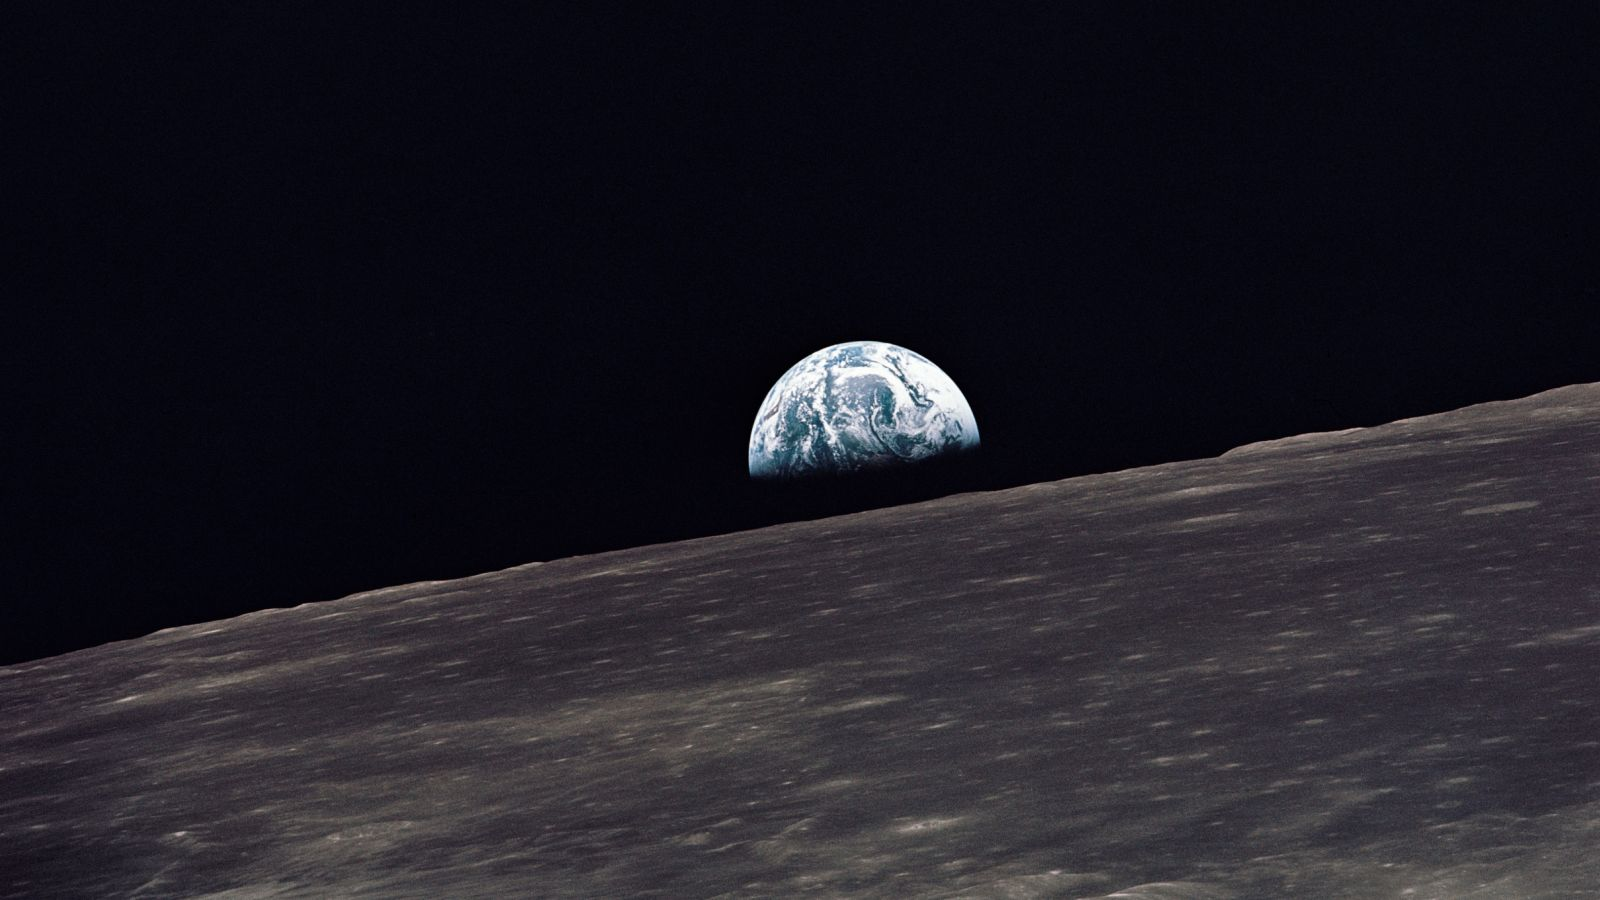 Earthrise as seen by the crew of Apollo 10 while orbiting the Moon. Photo Credit: NASA